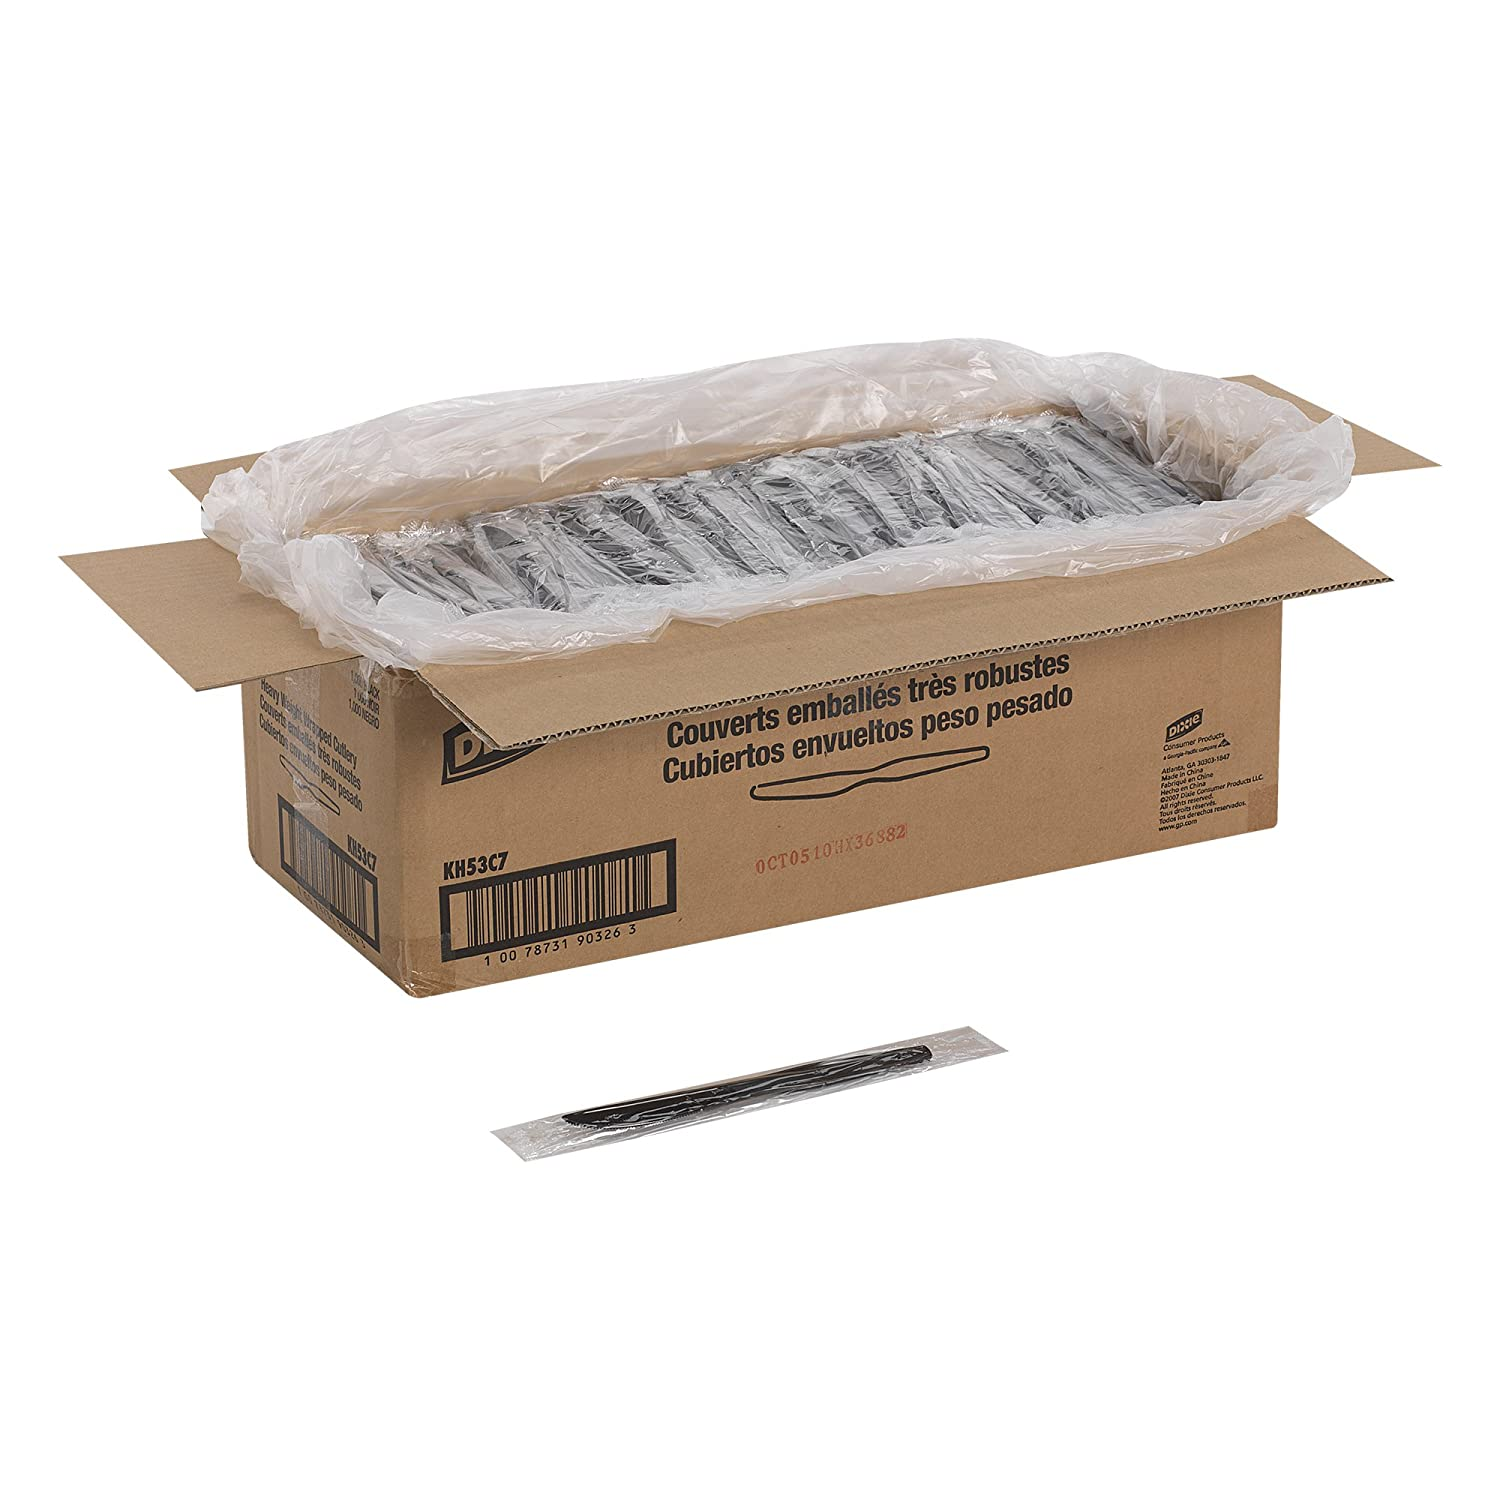 Amazon.com: Dixie KH53C7 Heavy Weight Polystyrene Knife, Individually Wrapped, 7.5